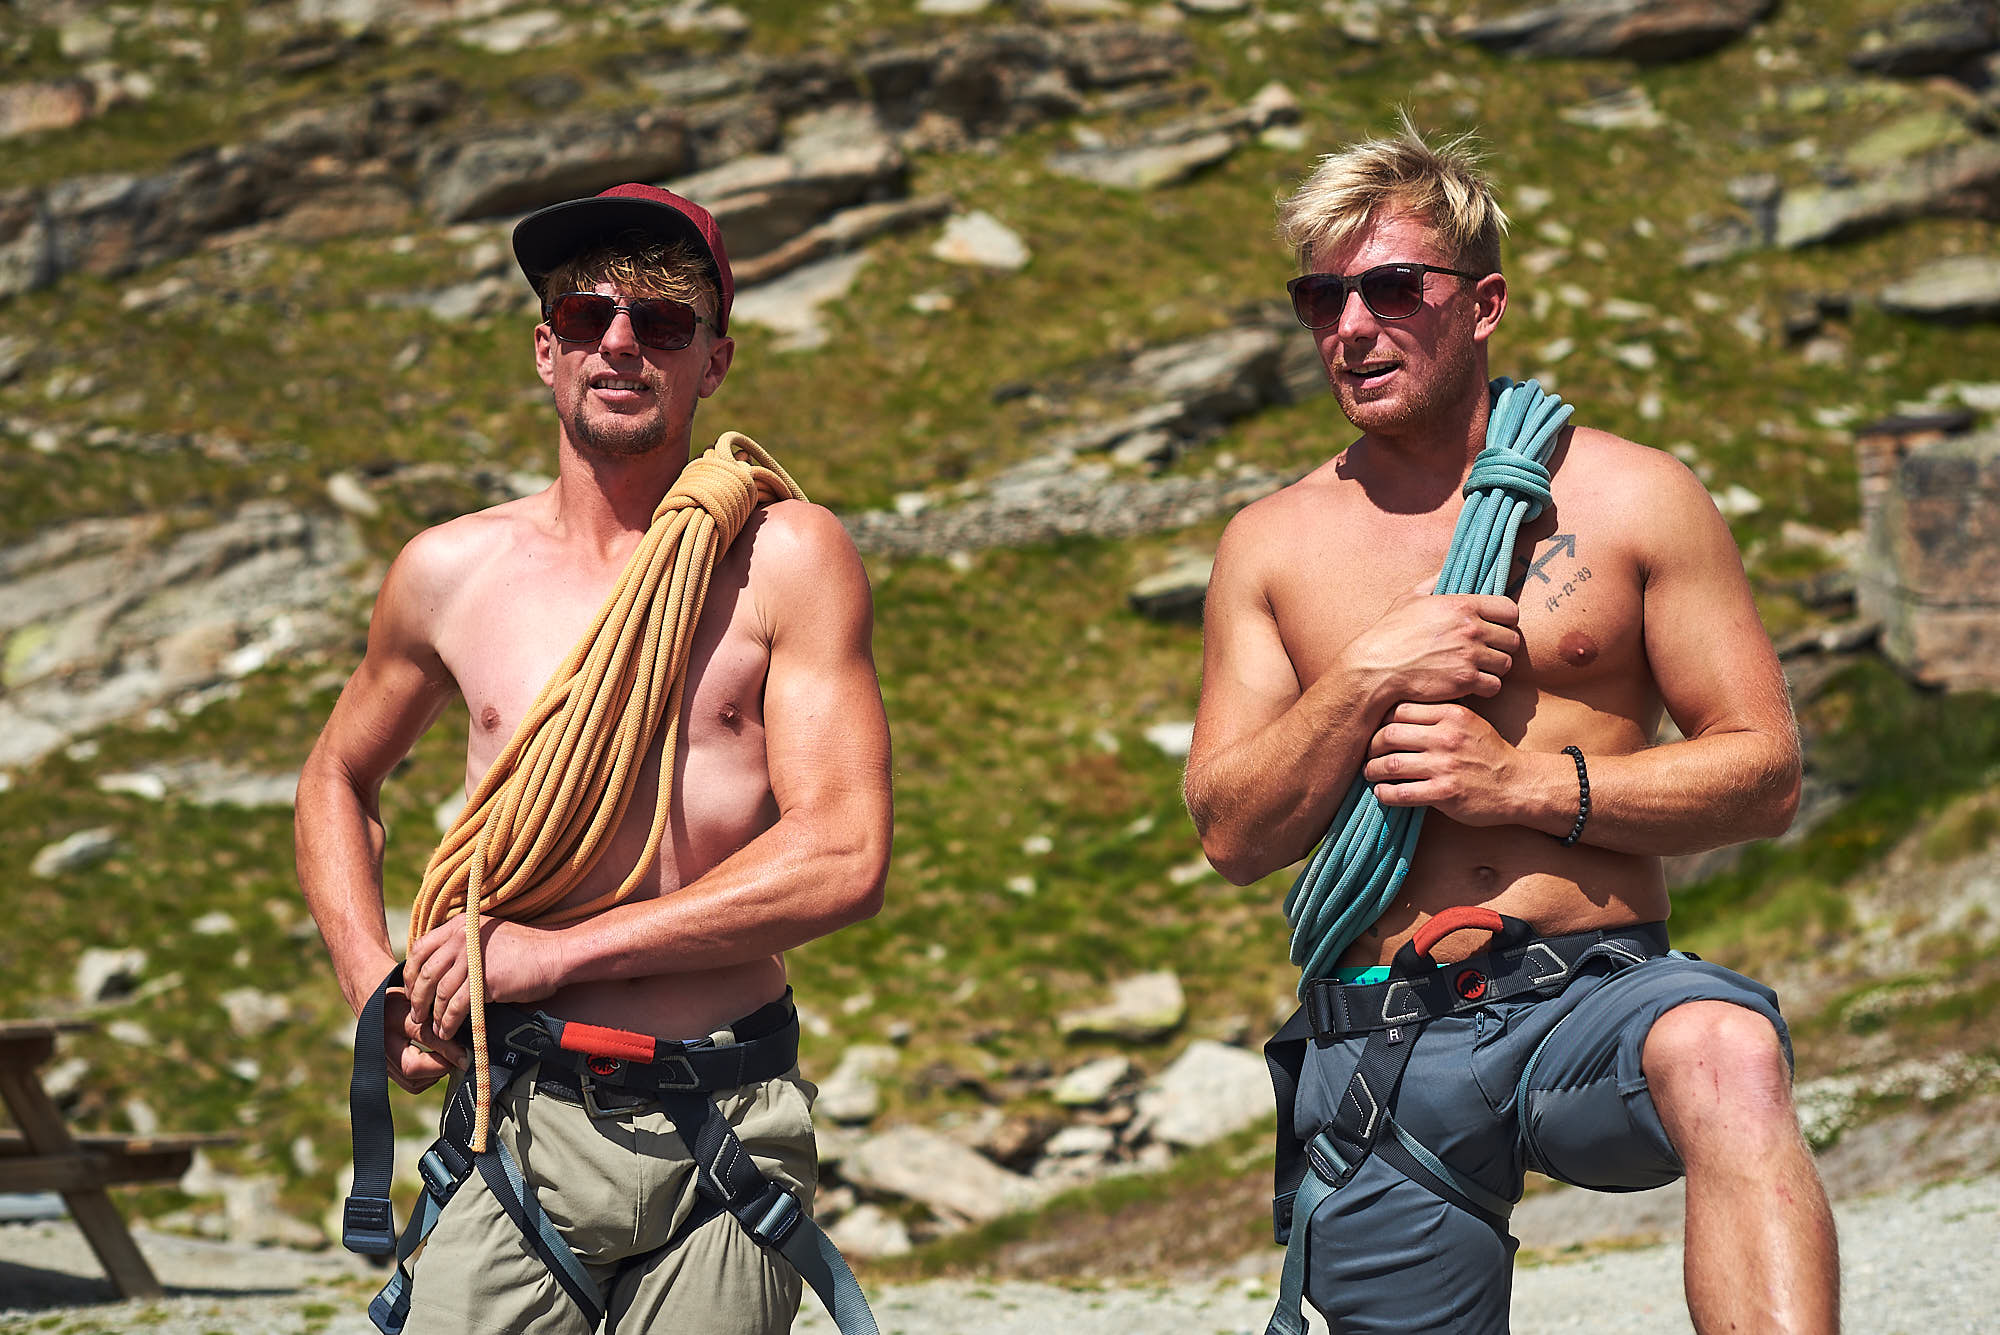 Two male alpinists preparing their gear